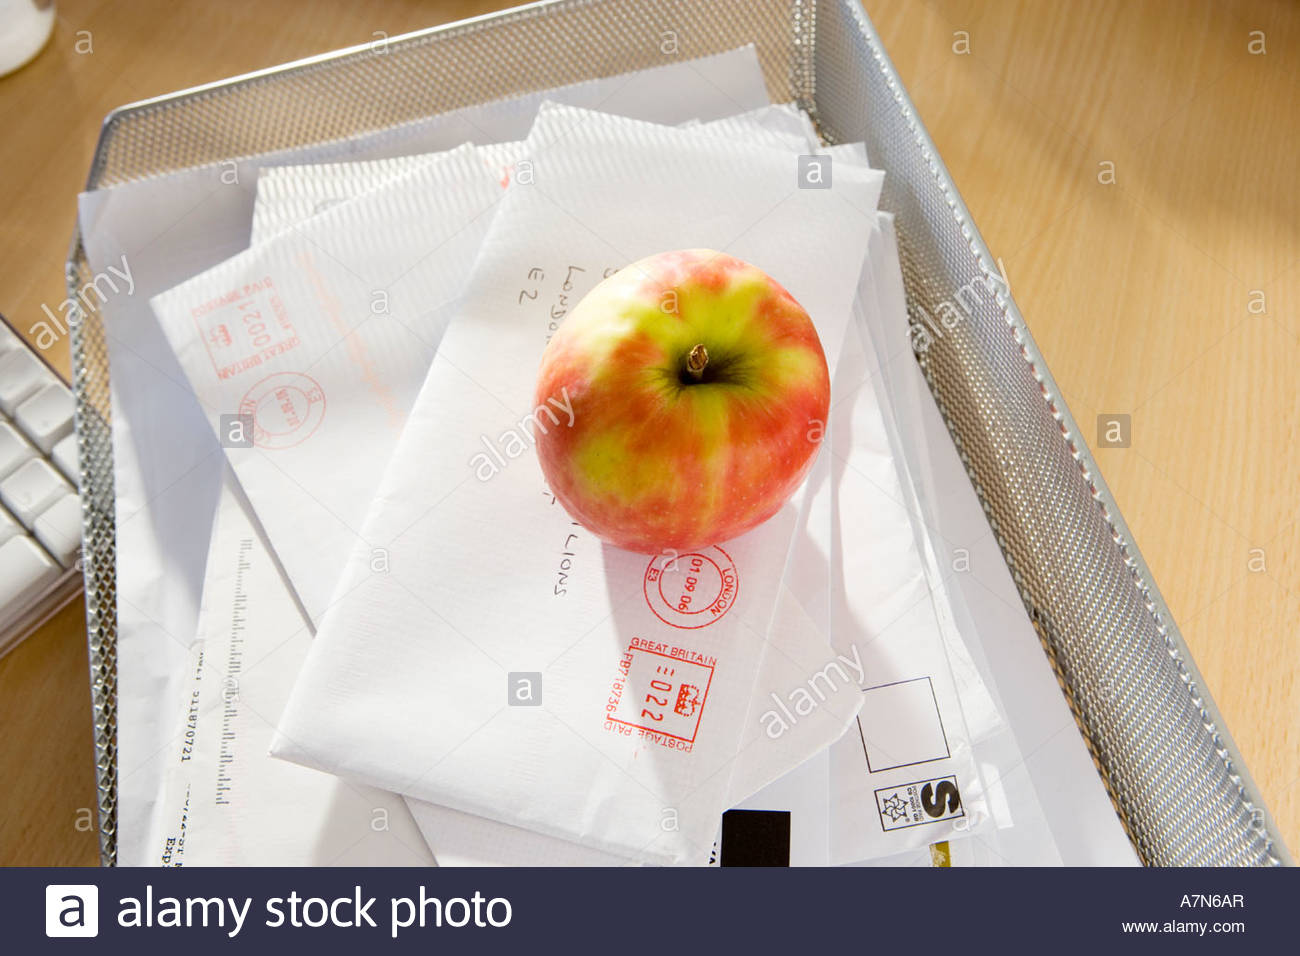 Apple and post in in tray on office desk close up elevated view still life - Stock Image